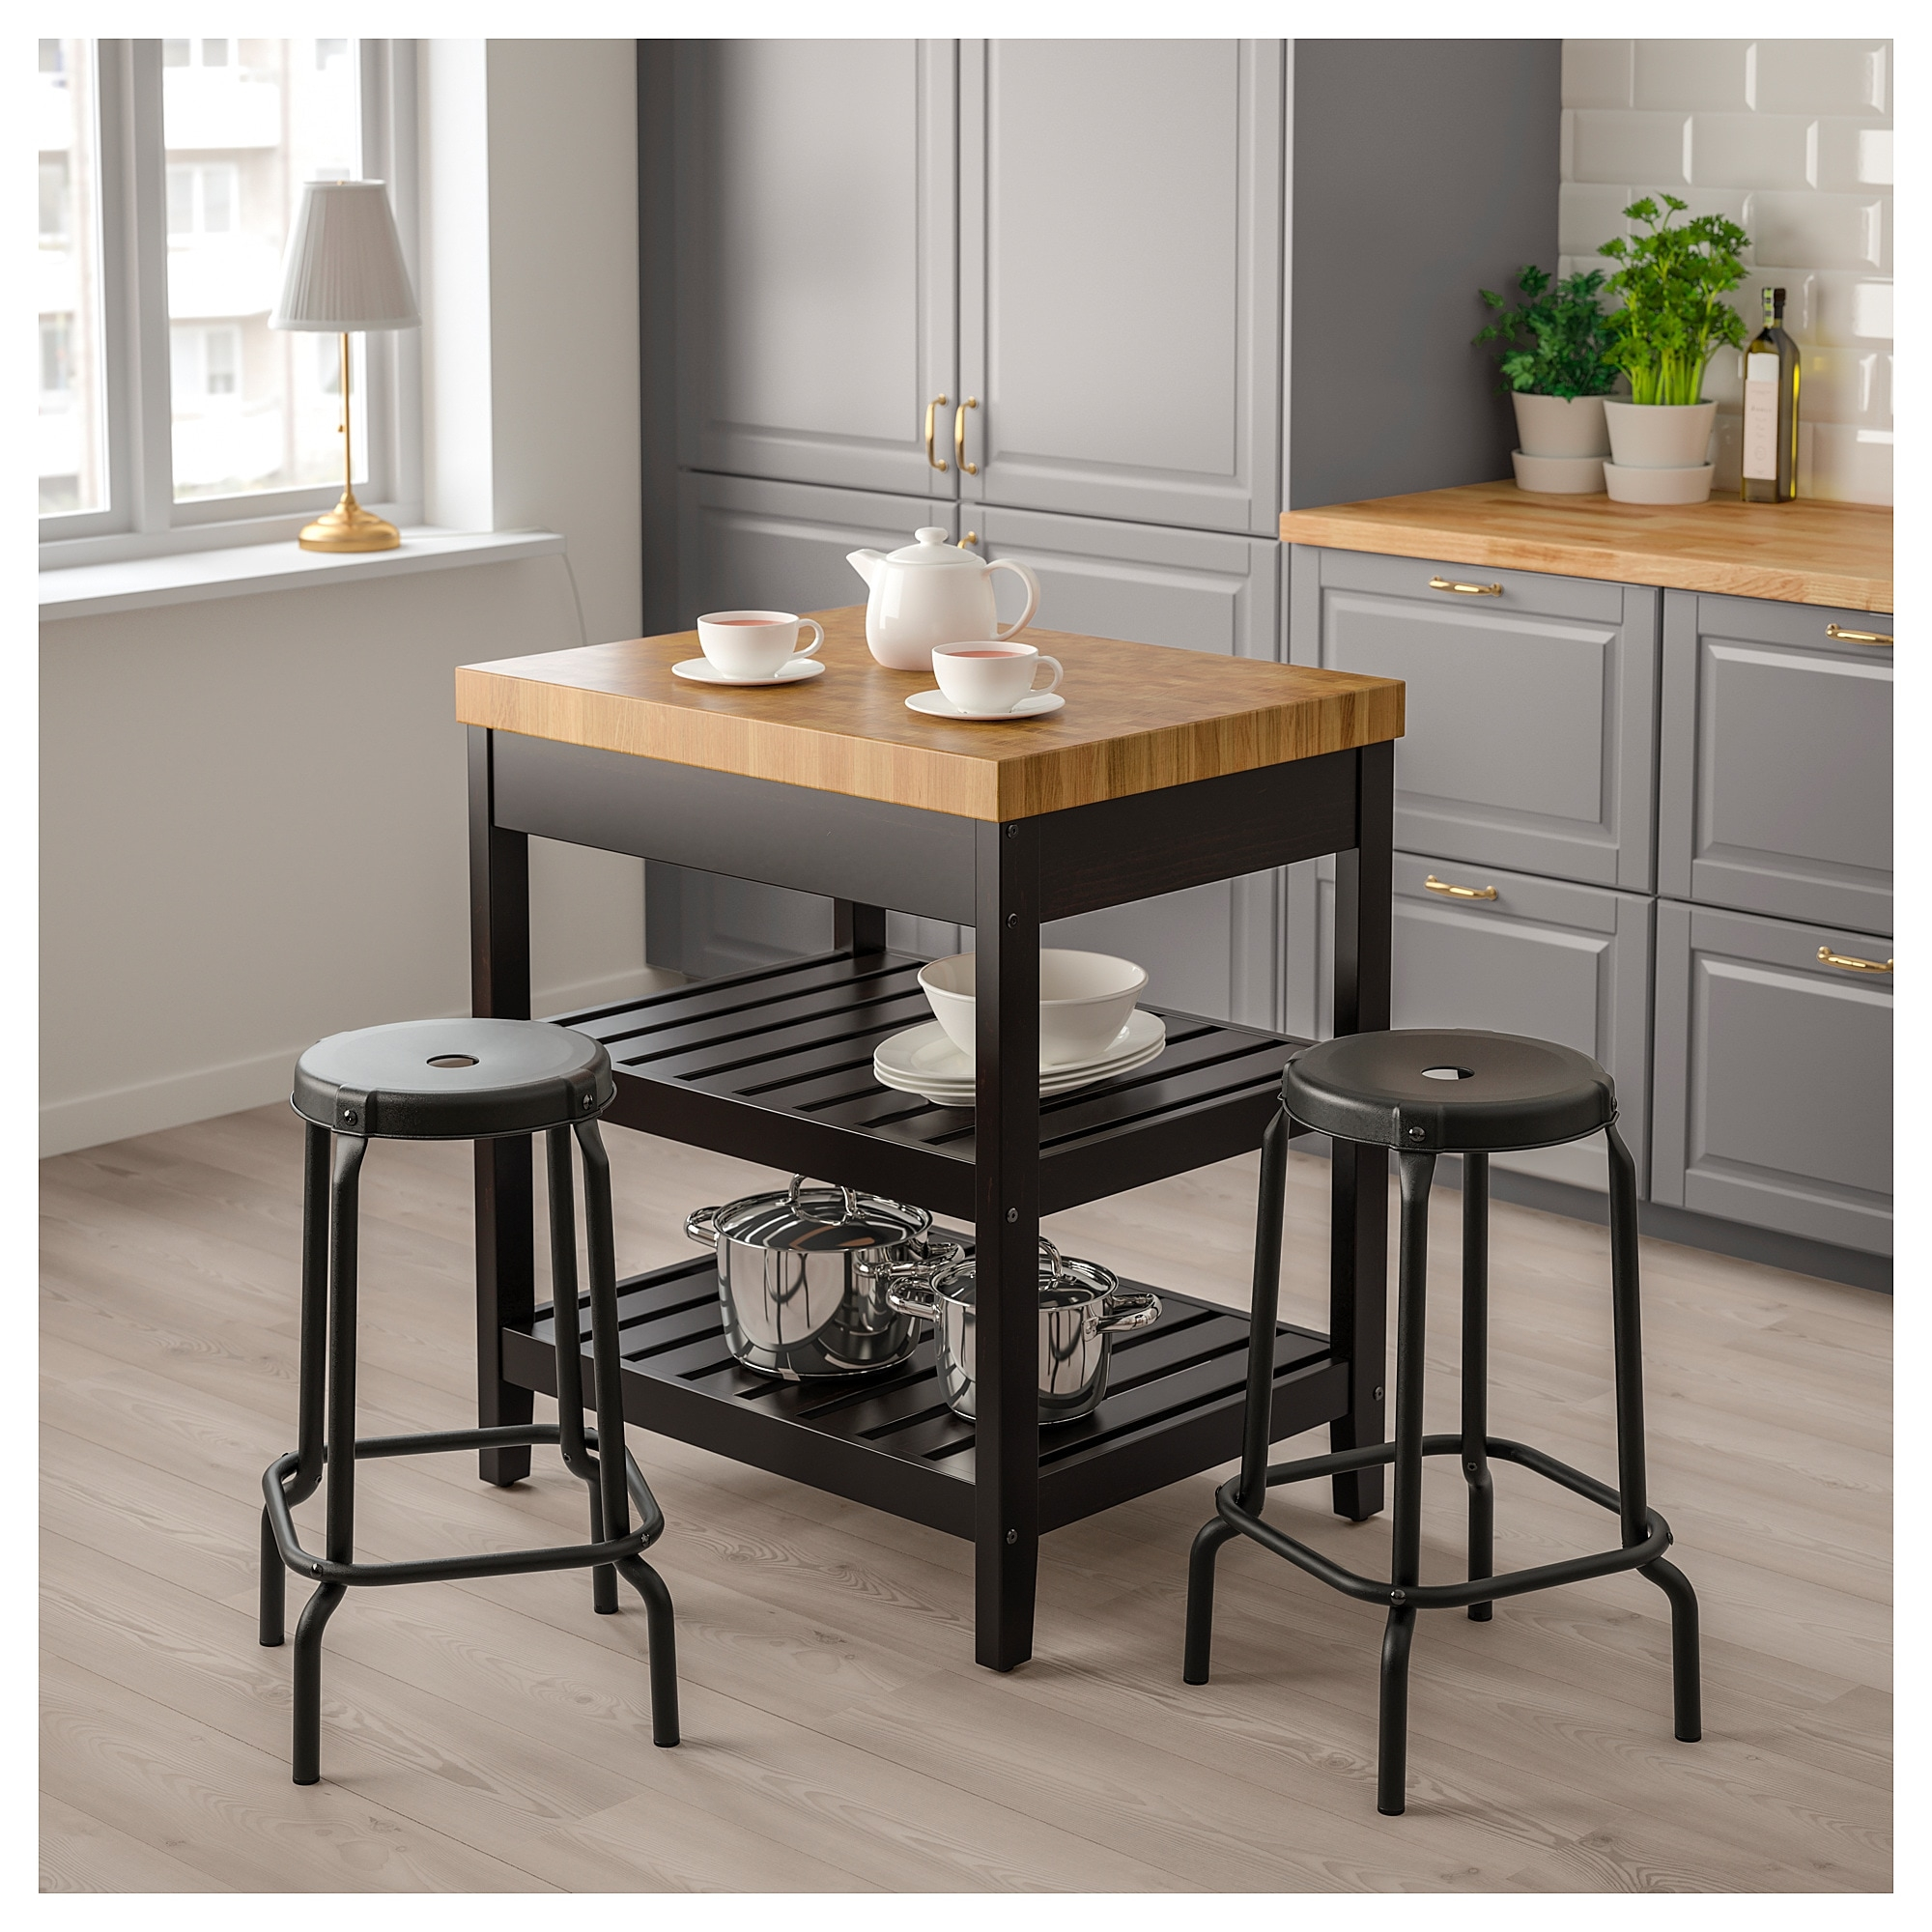 Ikea Kitchen Islands You Ll Love In 2020 Visualhunt